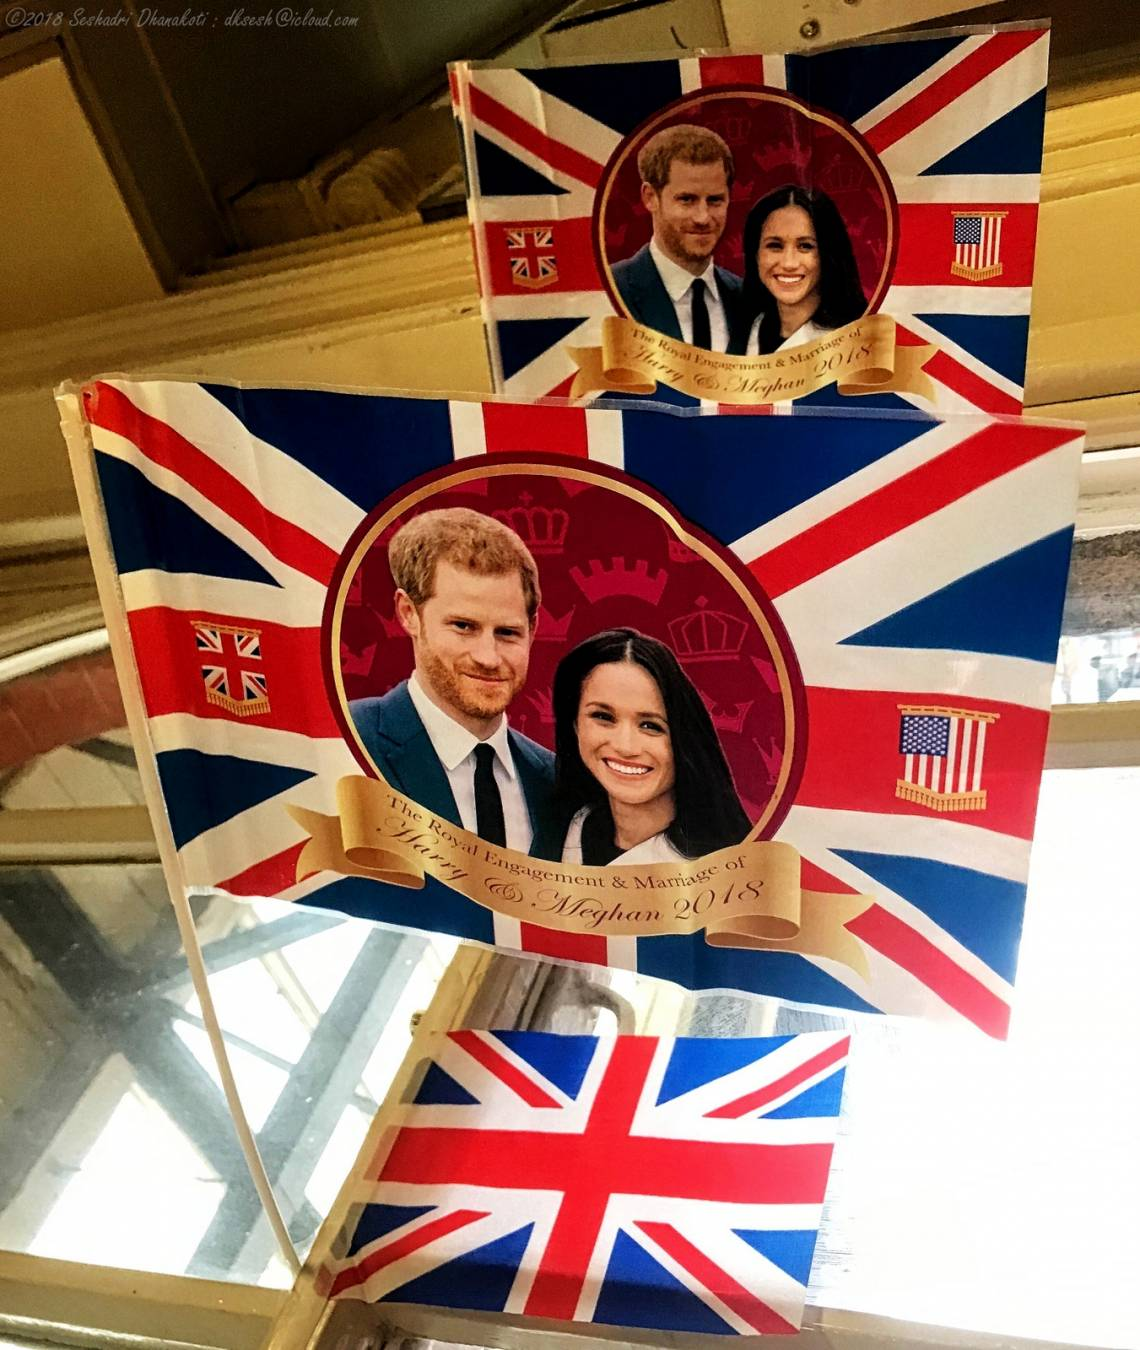 Wedding celebration decorations picturing Meghan Markle and Prince Harry, photographed at Clapham Junction station in London, England.